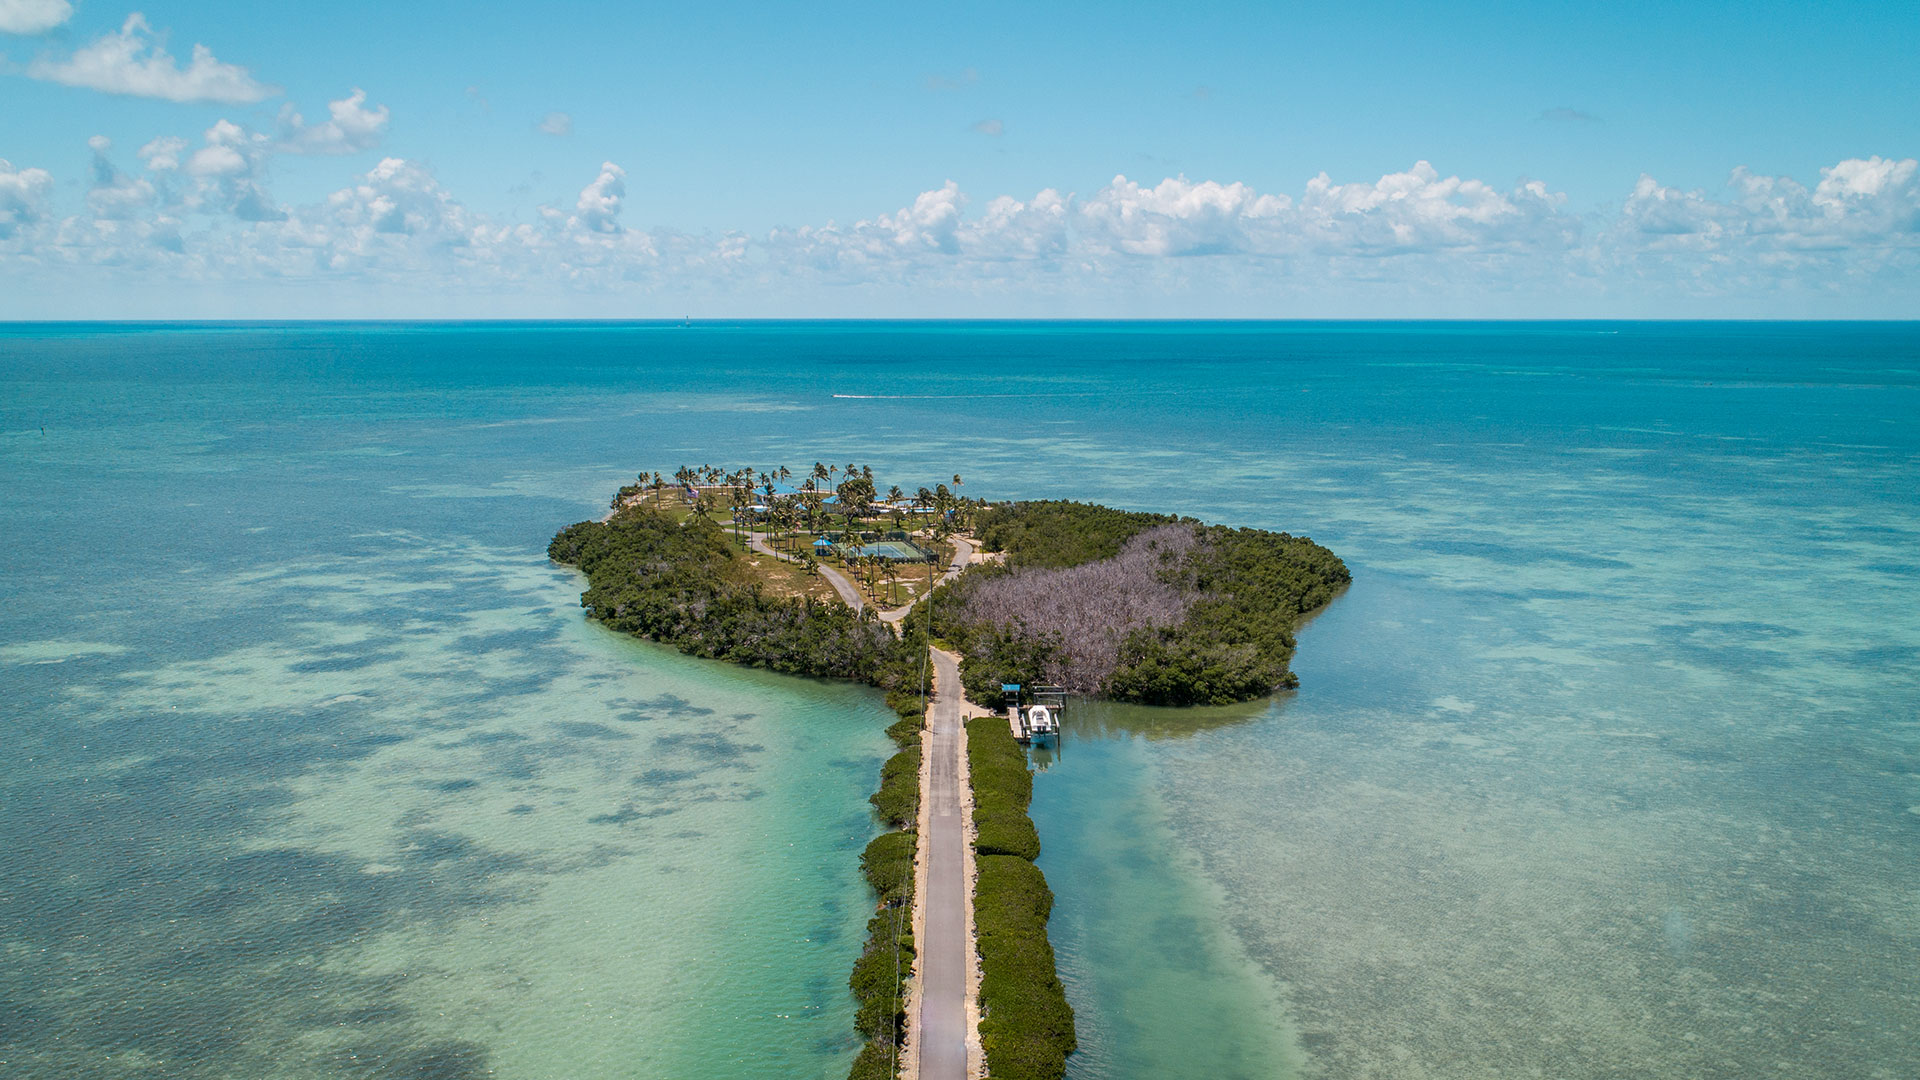 7. Overseas Highway (Florida)